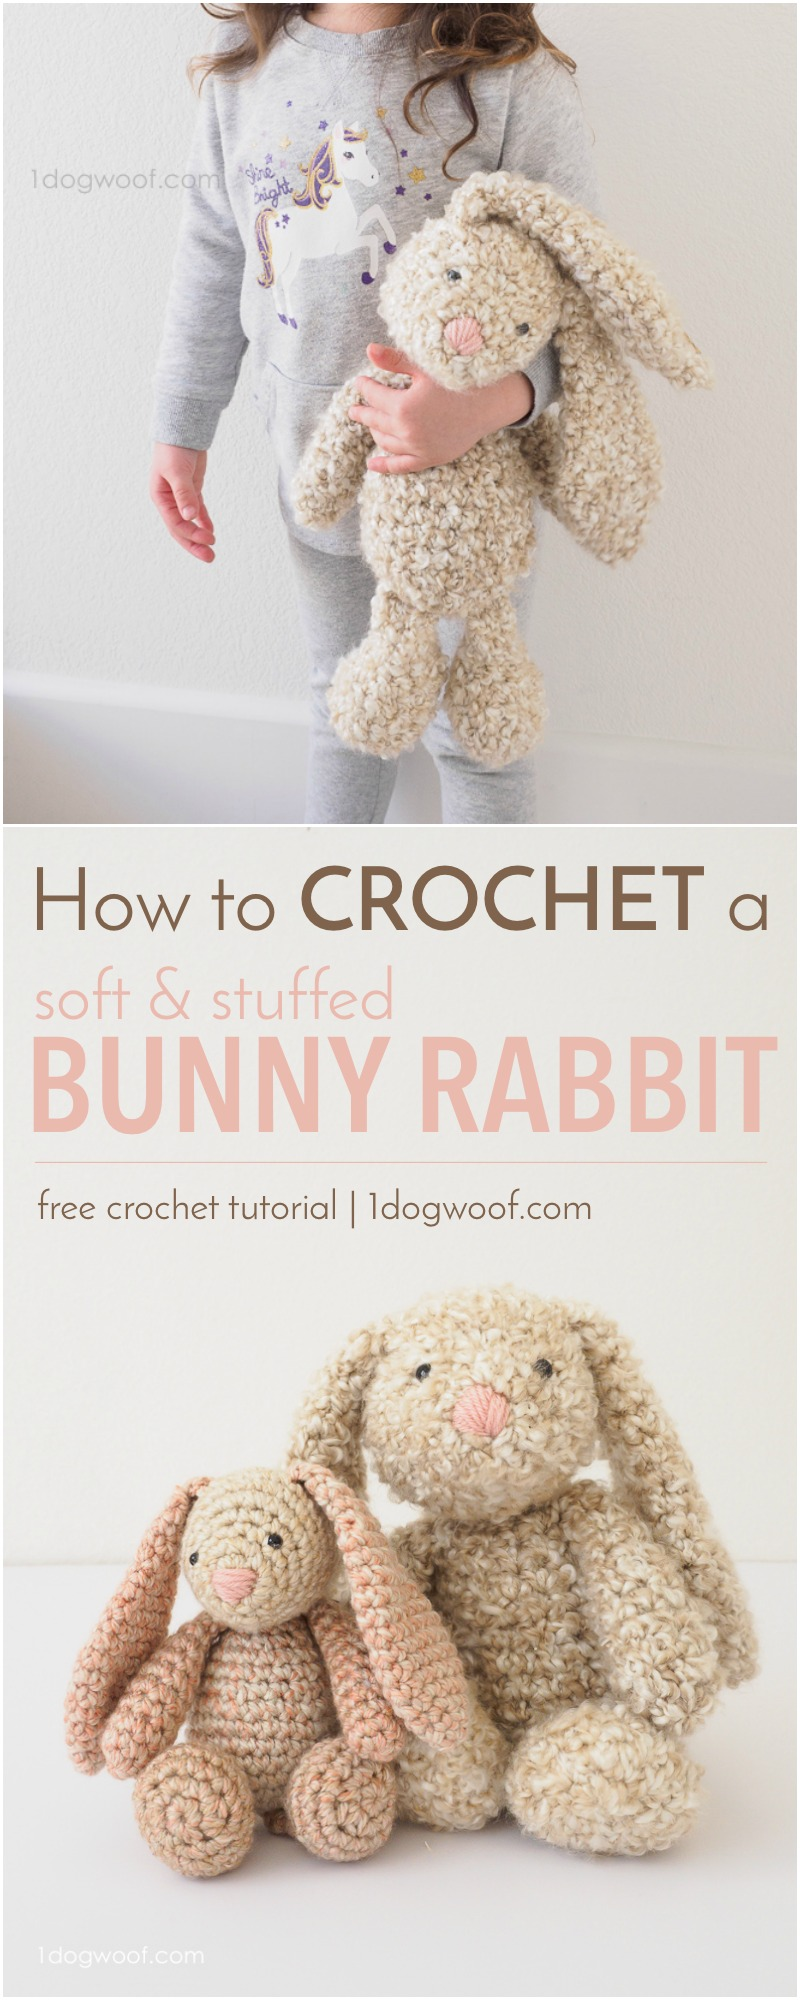 Classic stuffed bunny crochet pattern for easter one dog woof how to crochet a soft squishy floppy eared stuffed bunny rabbit using bankloansurffo Choice Image